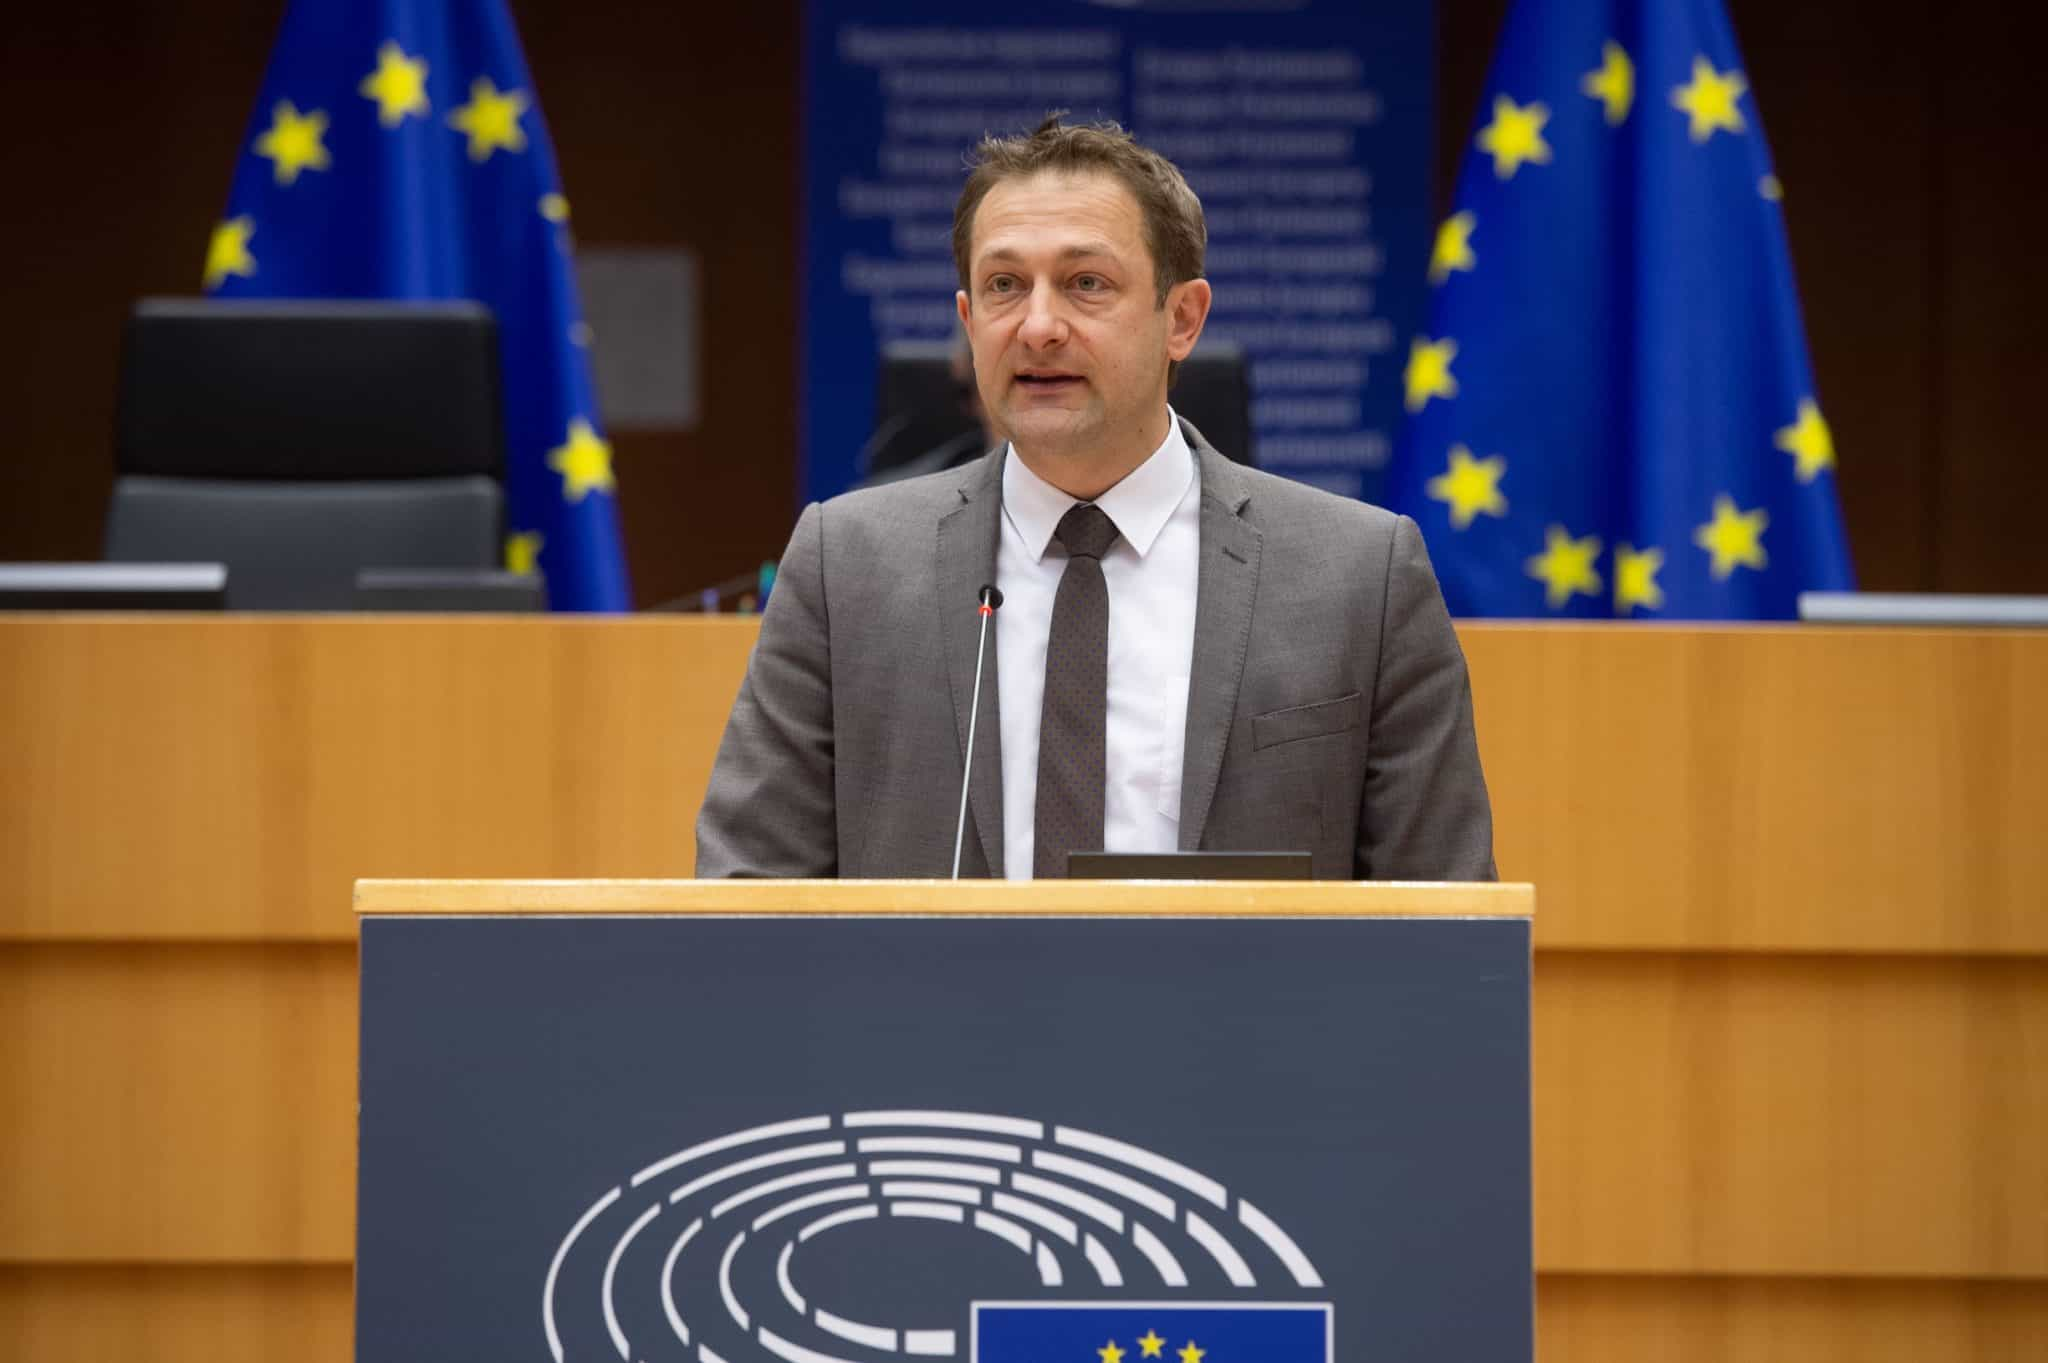 Christophe Hansen, member of the UK coordination group at the European Parliament